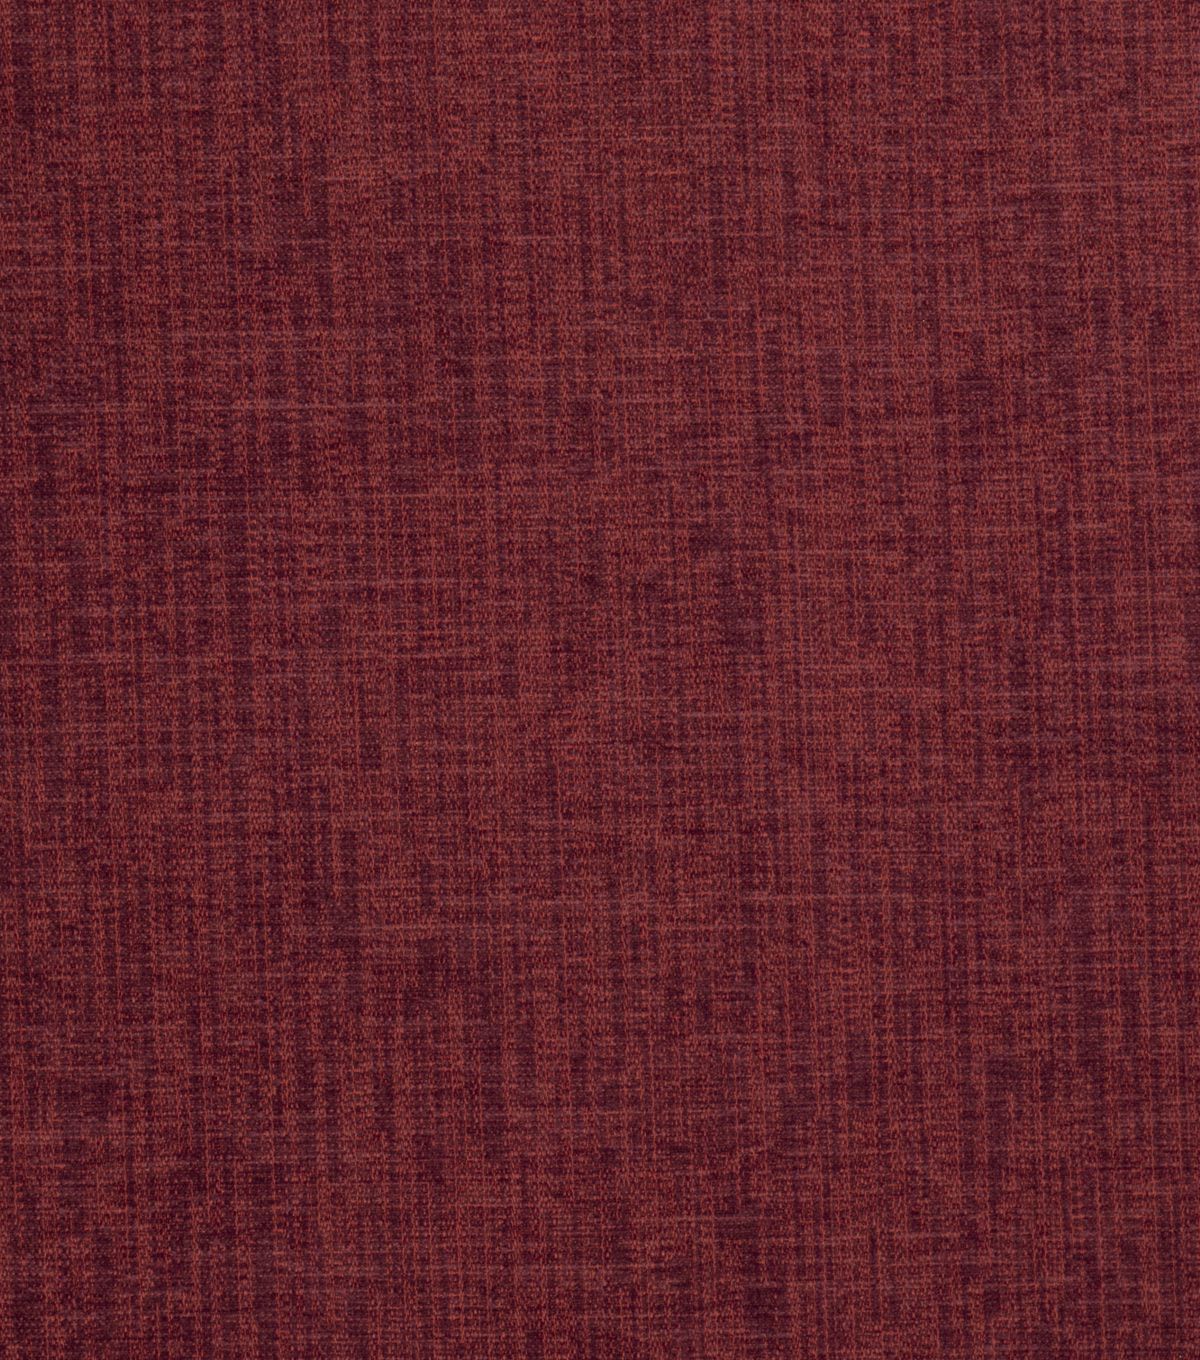 Home Decor 8x8 Fabric Swatch-Eaton Square Swivel Cerise